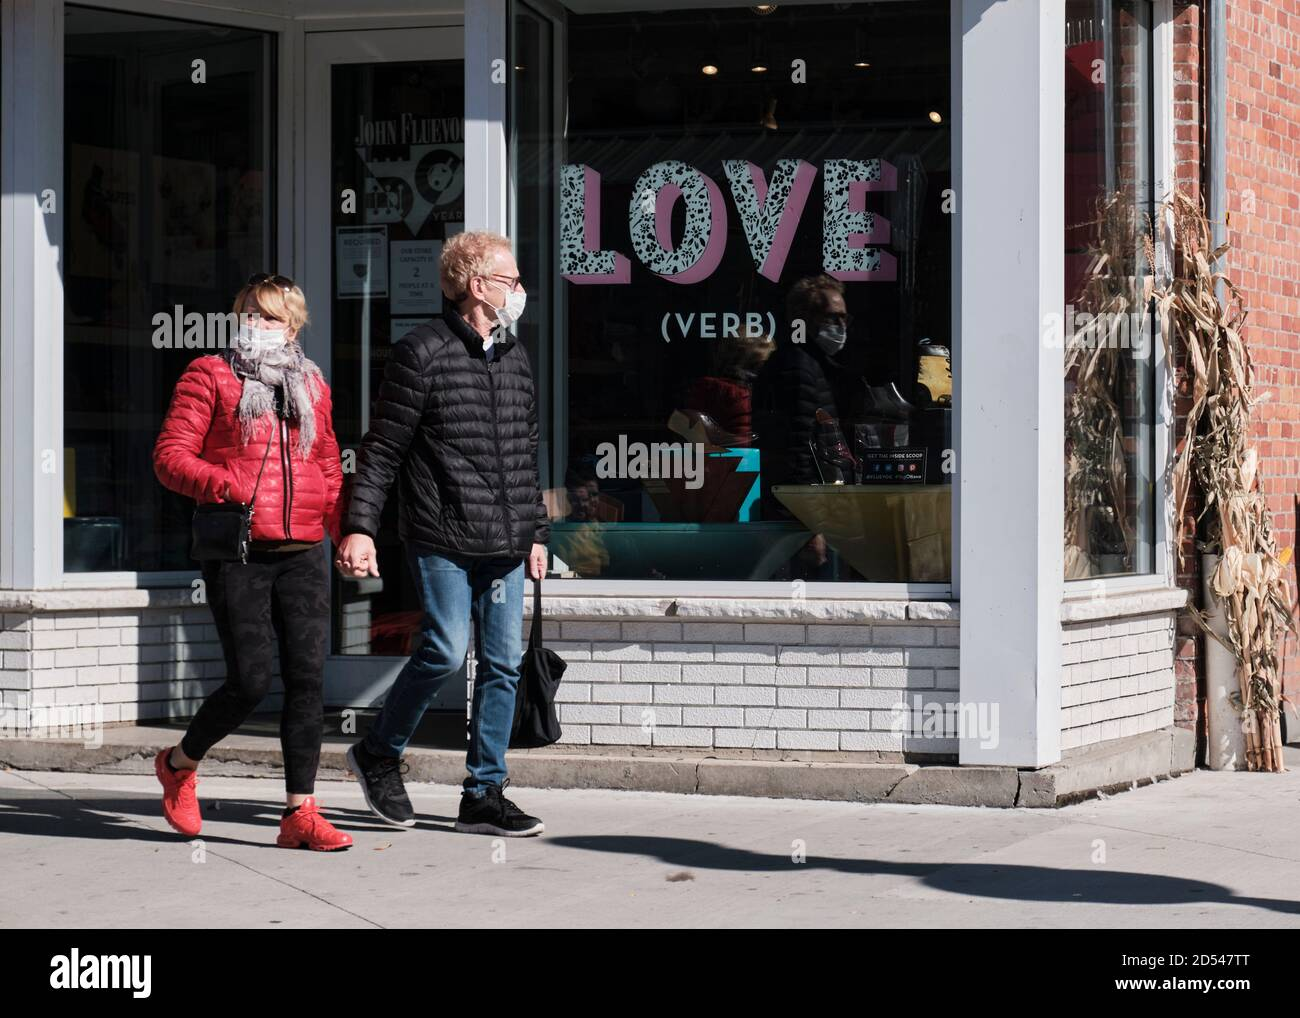 couple-walking-holding-hands-by-store-window-with-the-word-love-printed-they-are-not-looking-at-eachother-2D547TT.jpg